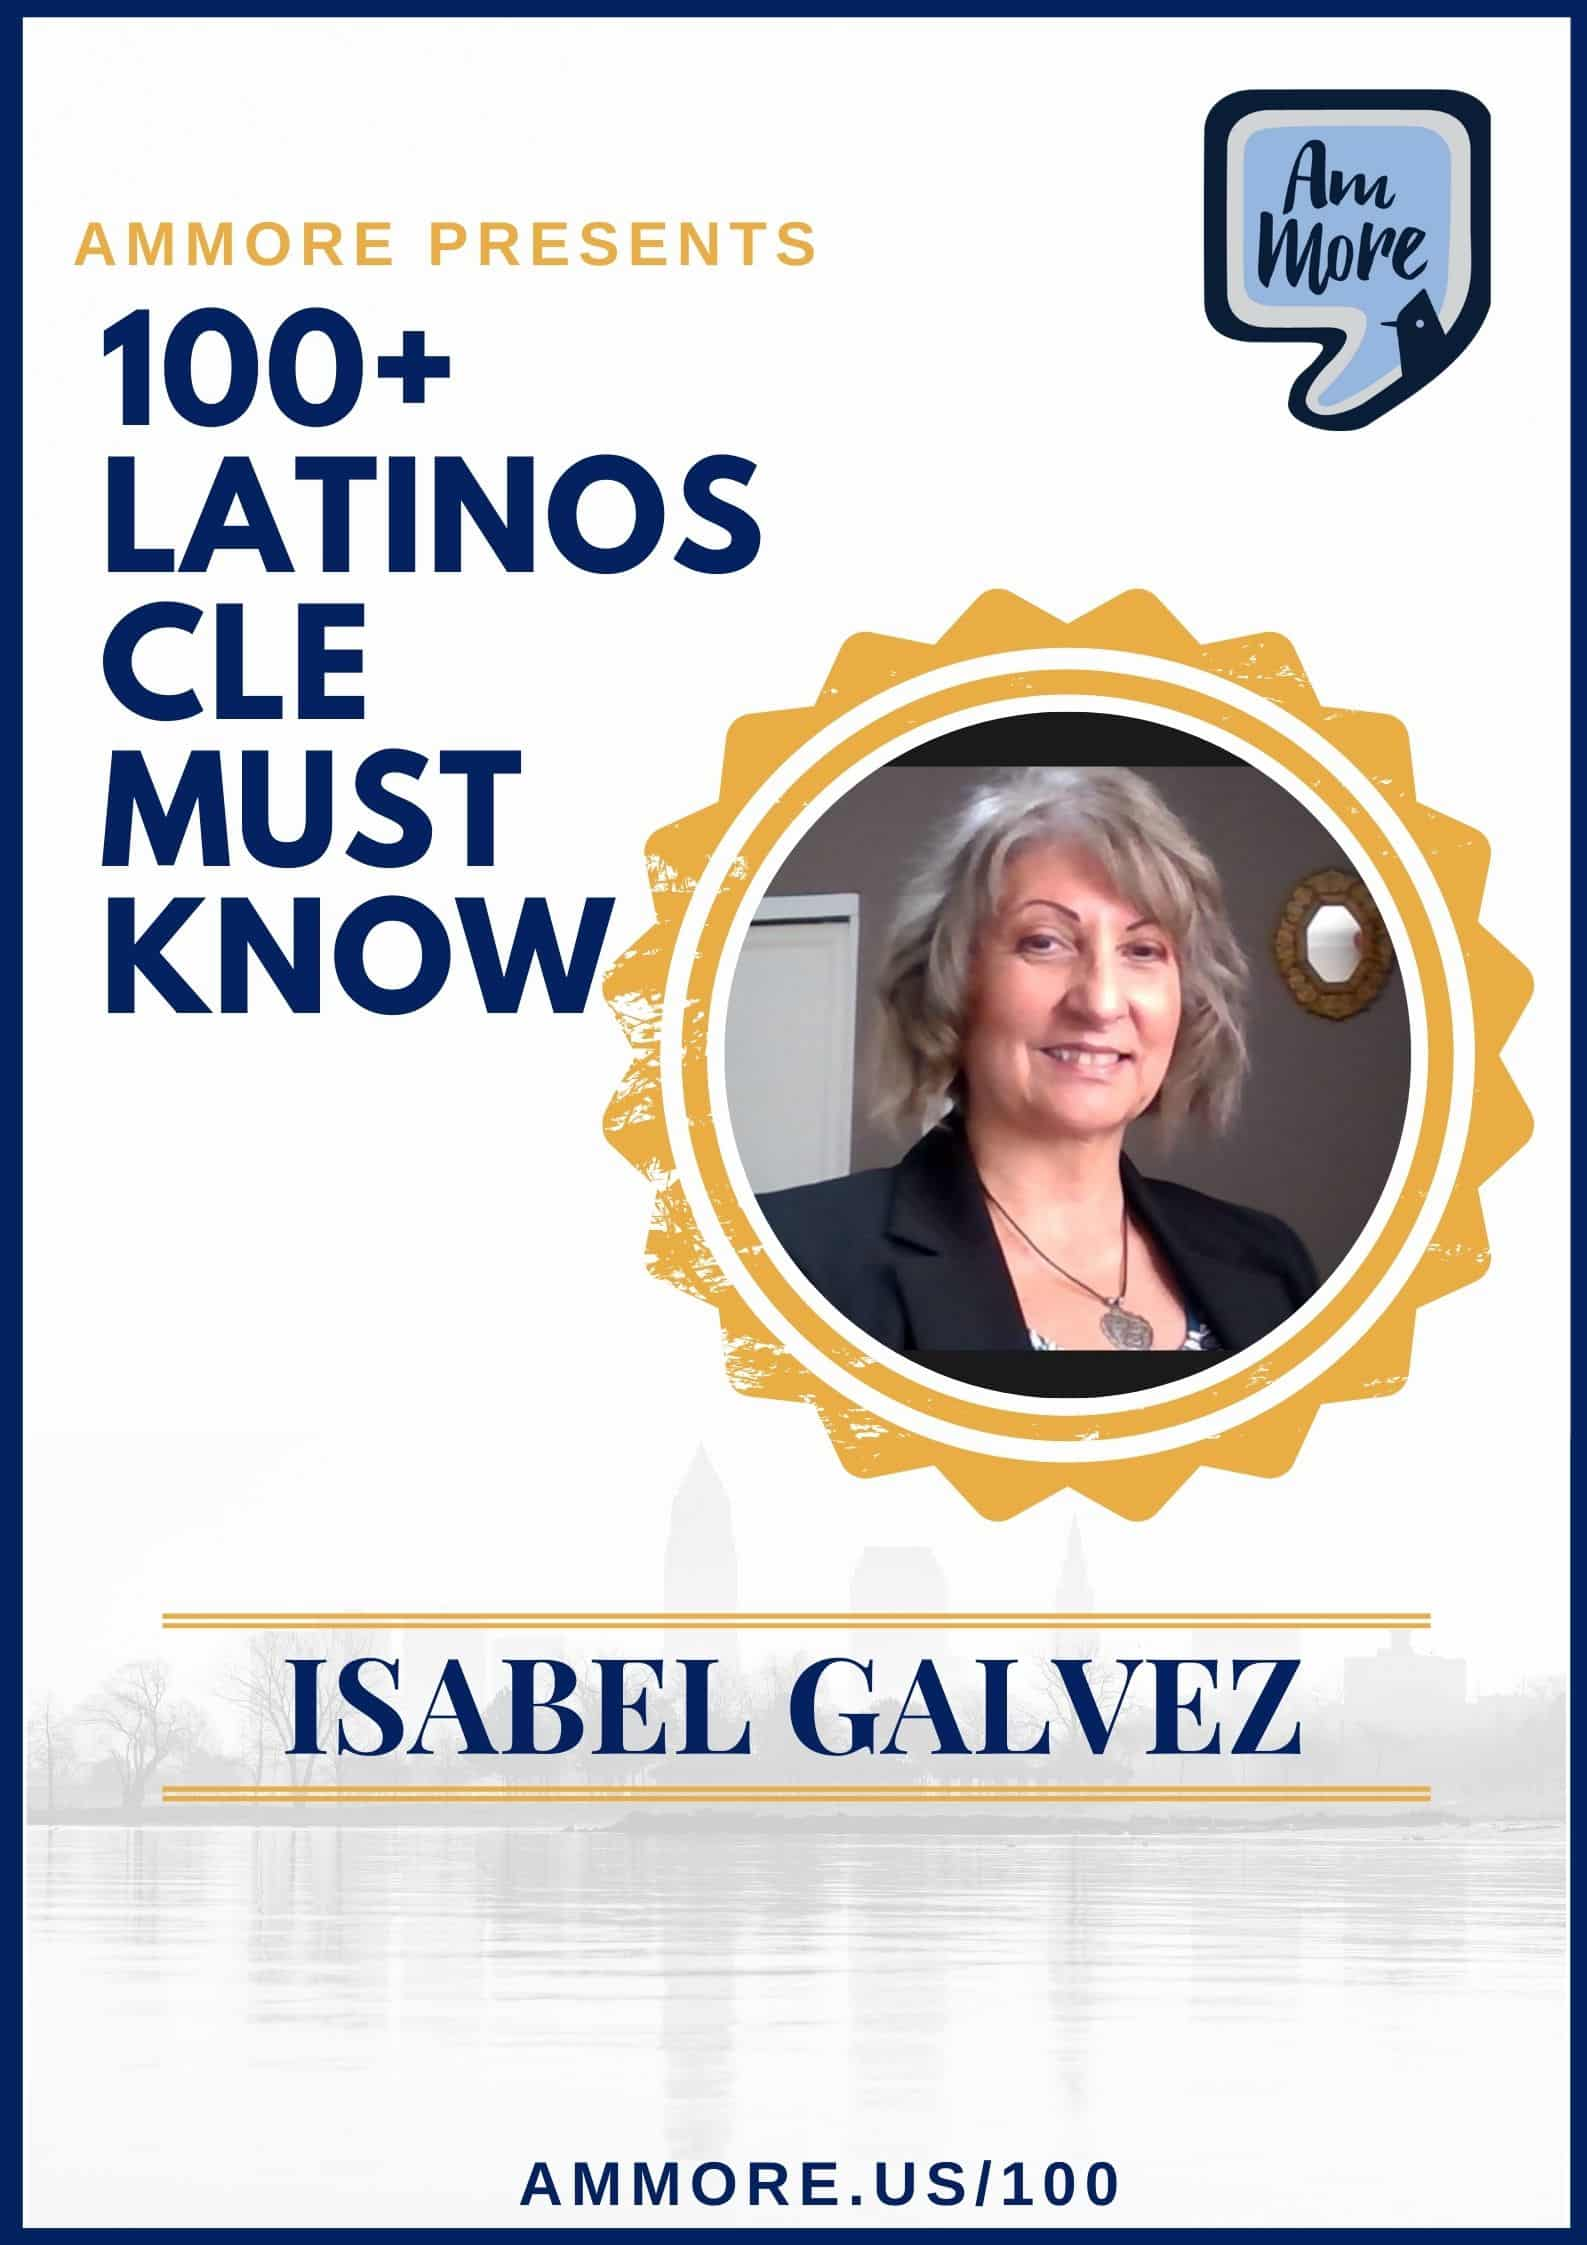 100 Latinos CLE Must Know: Isabel Galvez